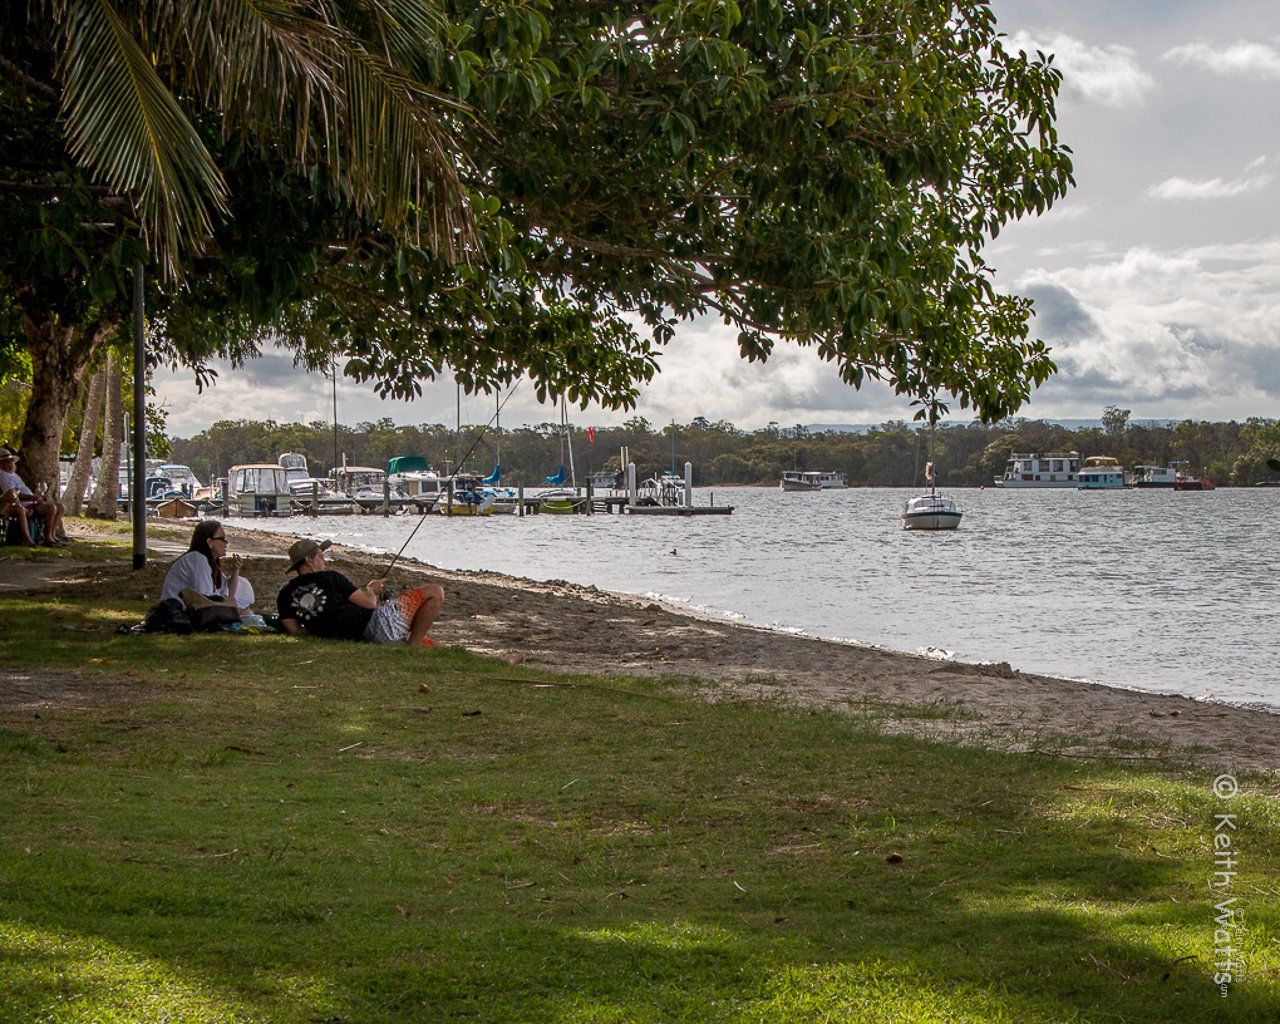 A family take time out to relax and maybe catch a fish or two at Noosaville on the Sunshine Coast